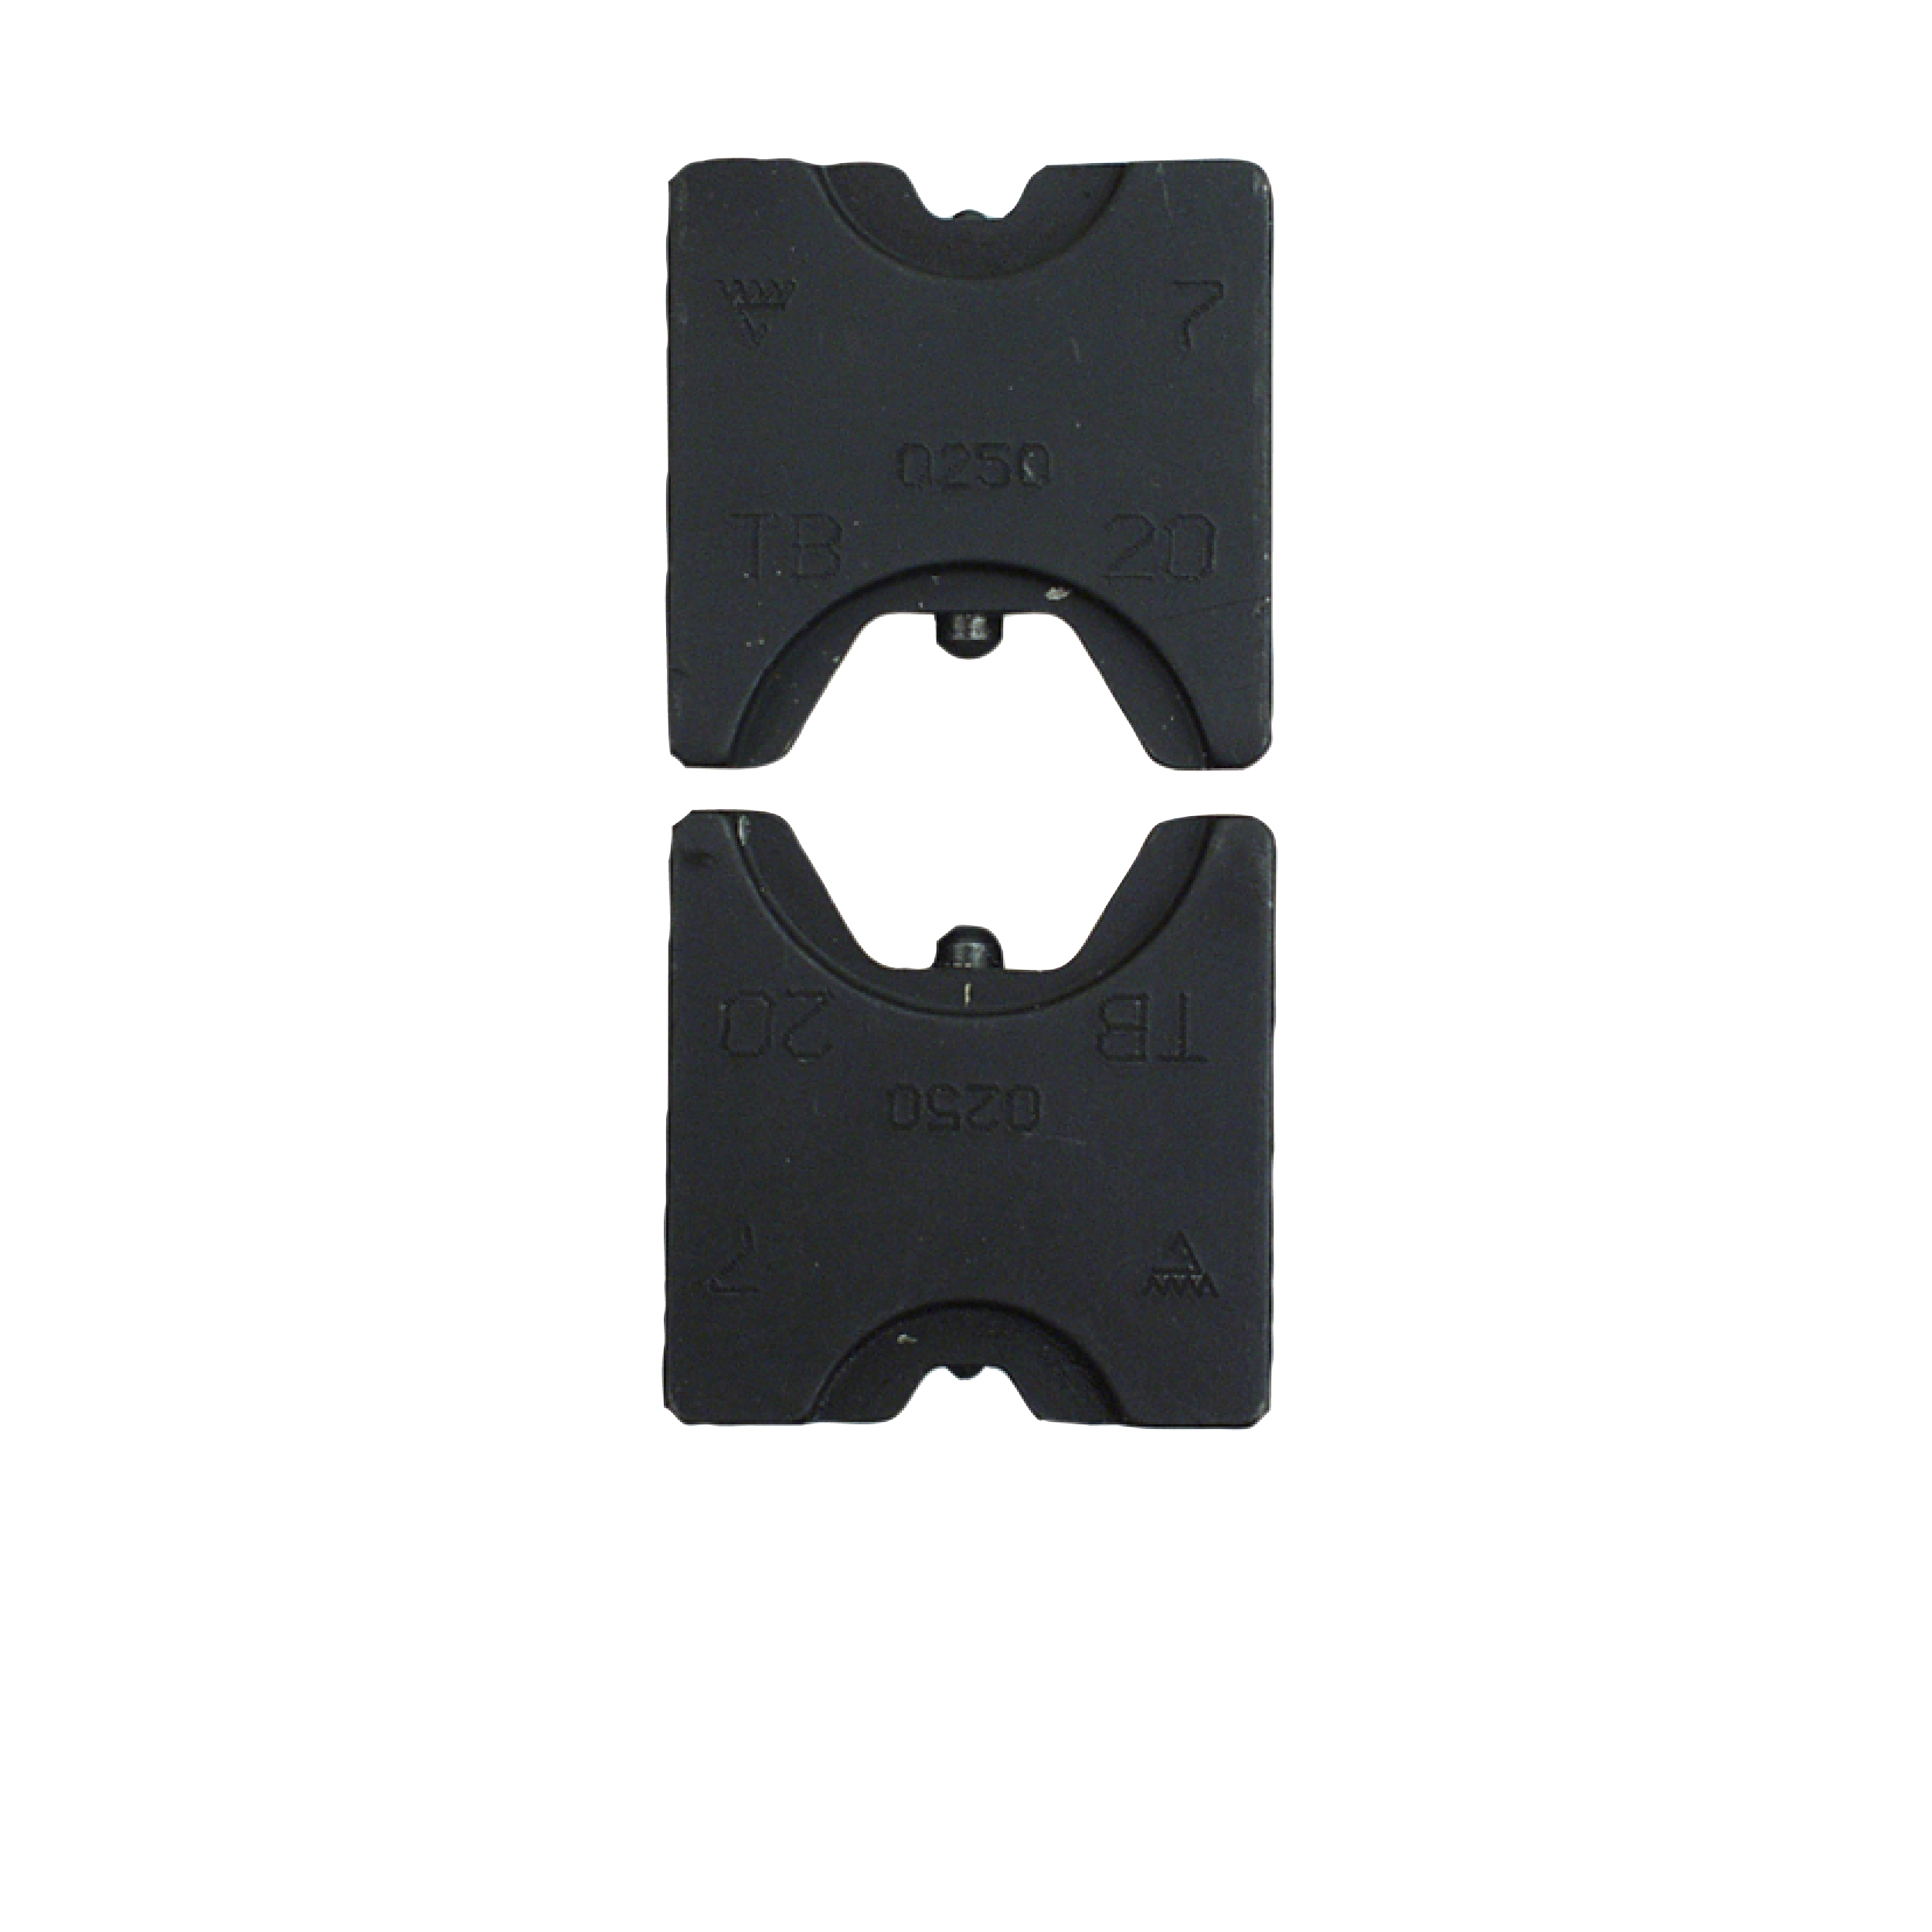 Elpress Accessories- Crimp Dies for Tool types T2600, V600 , V611, PVL611 and PVX611